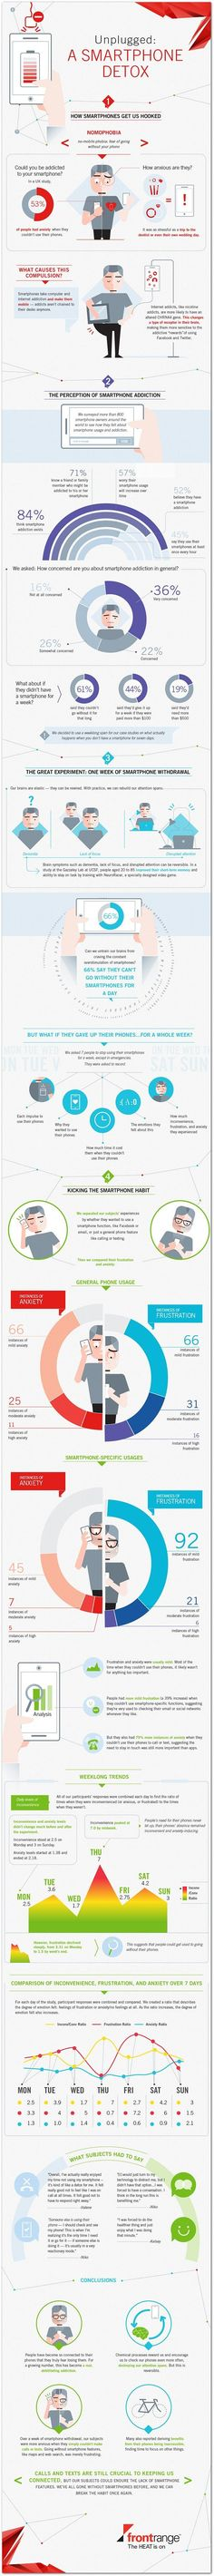 How to survive without your smartphone #gadgets #phone | #infographics repinned by @Piktochart